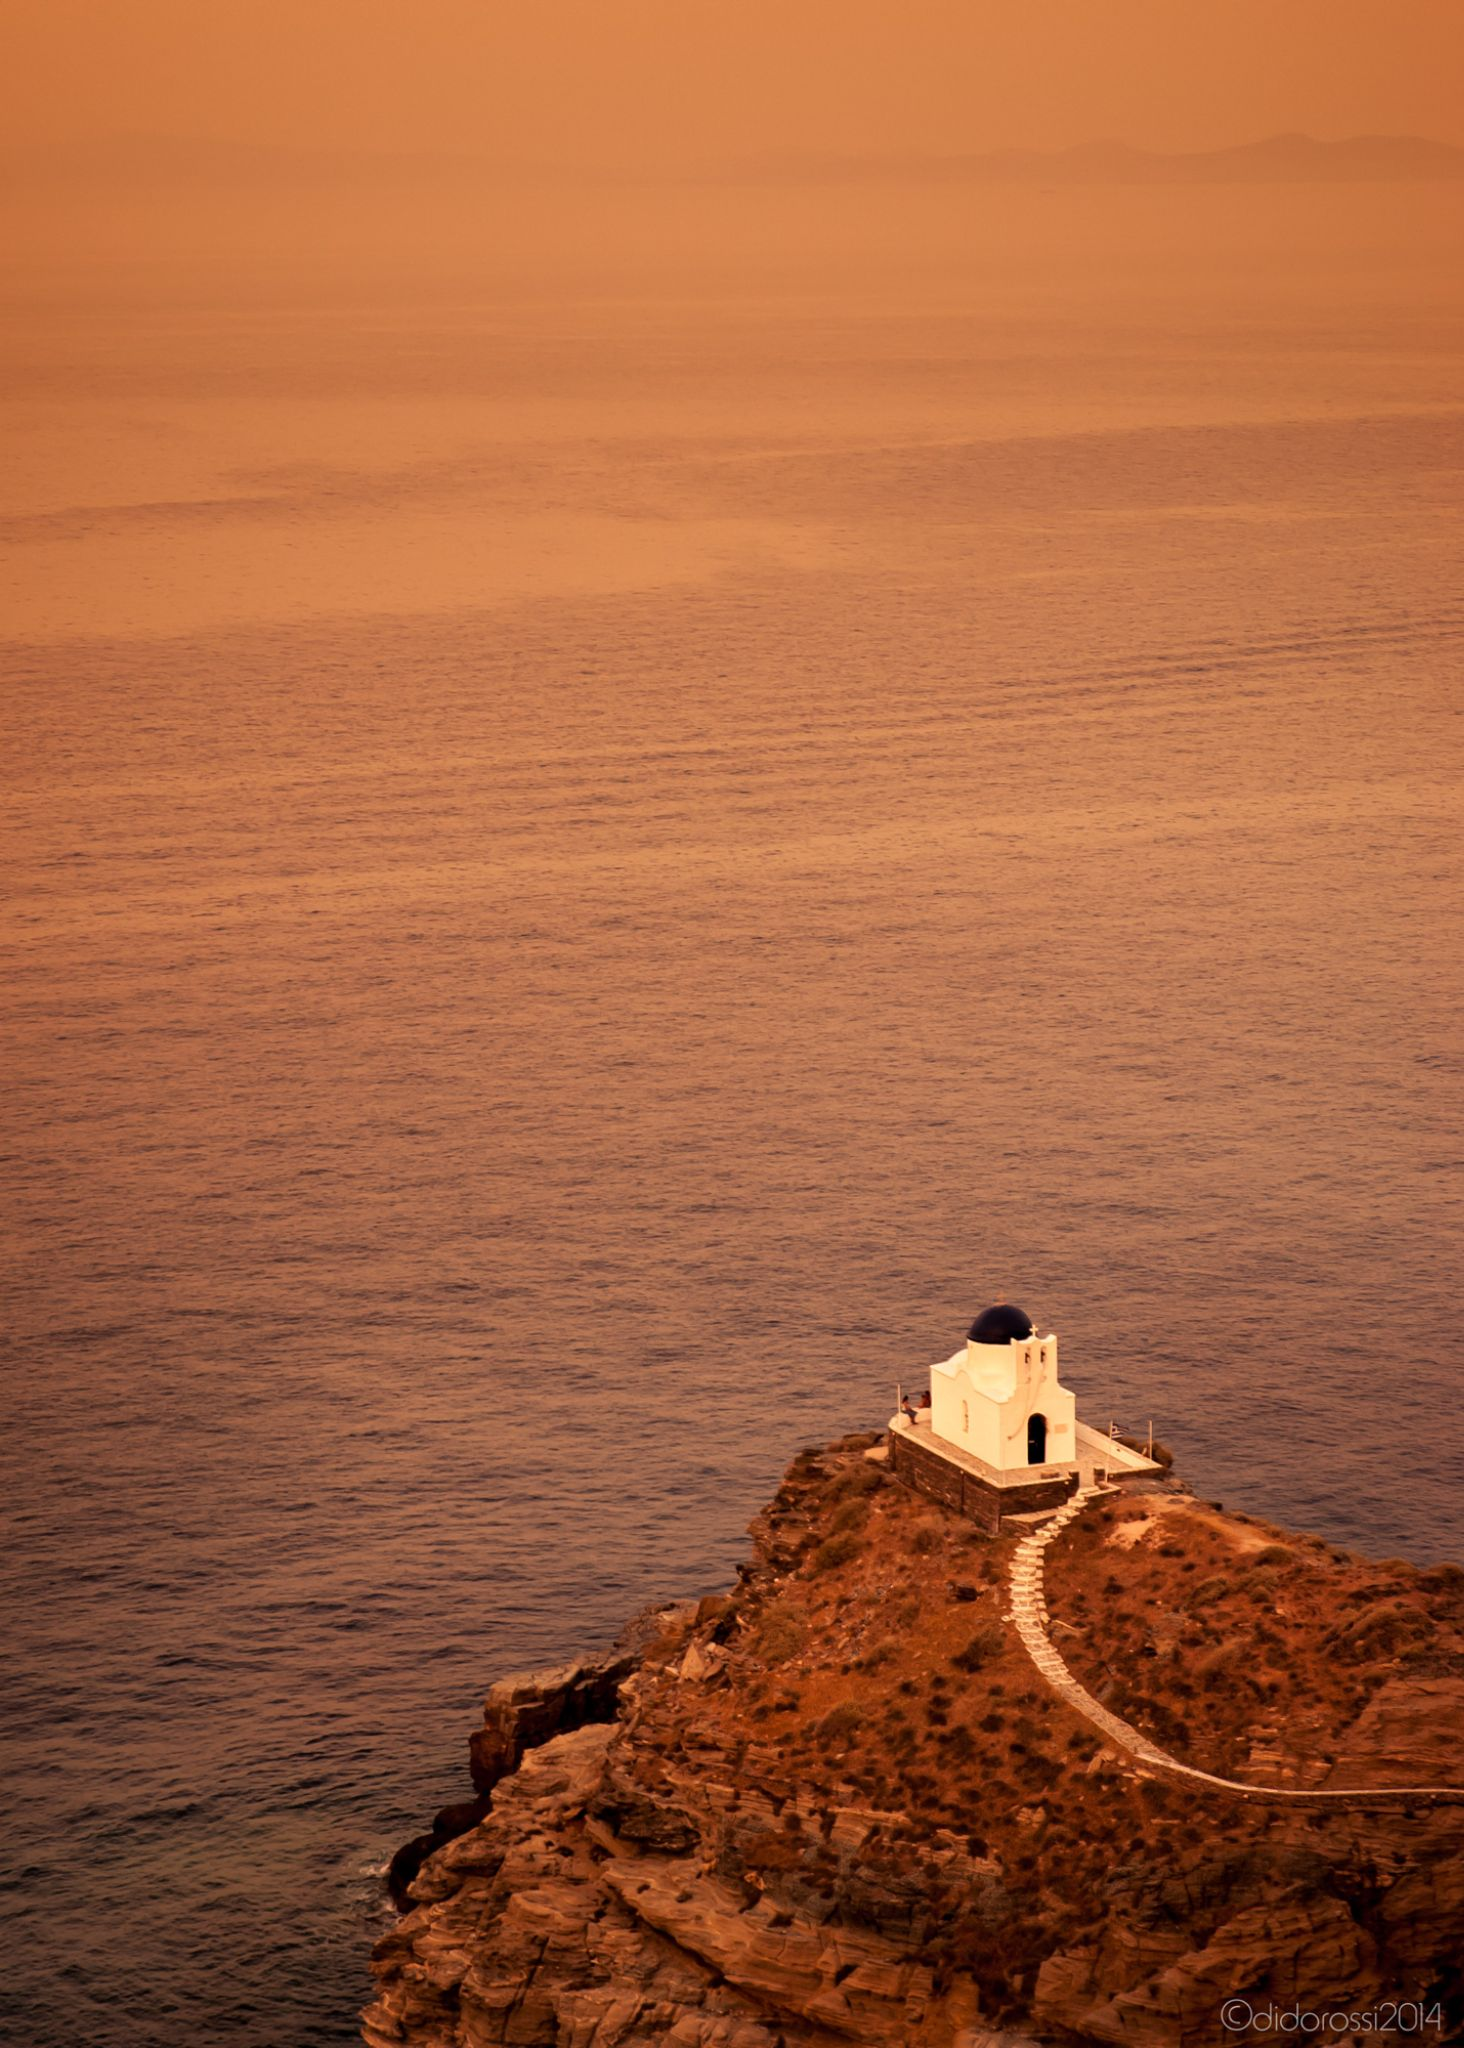 Sifnos 2 by didorossi